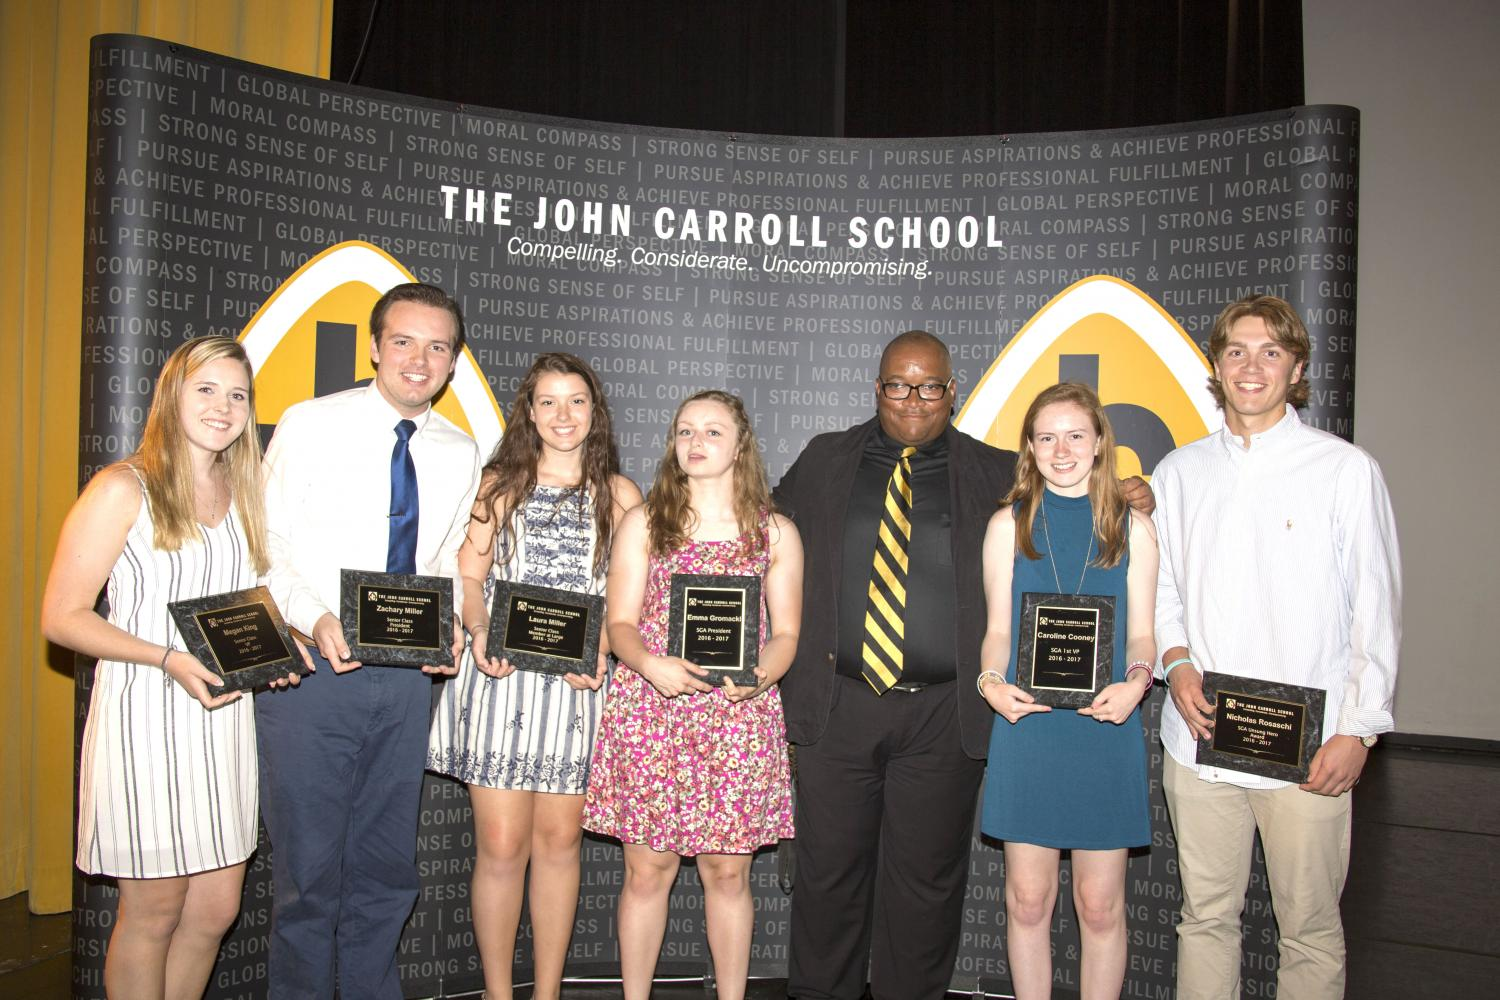 Senior representatives for the Student Government Association Megan King, Zachary Miller, Laura Miller, Emma Gromacki, Caroline Cooney, and Nick Rosaschi were awarded by SGA moderator Rodney Johnson during the Senior Award Ceremony. The Senior Award Ceremony took place on May 18 in the auditorium and honored seniors for their achievements.